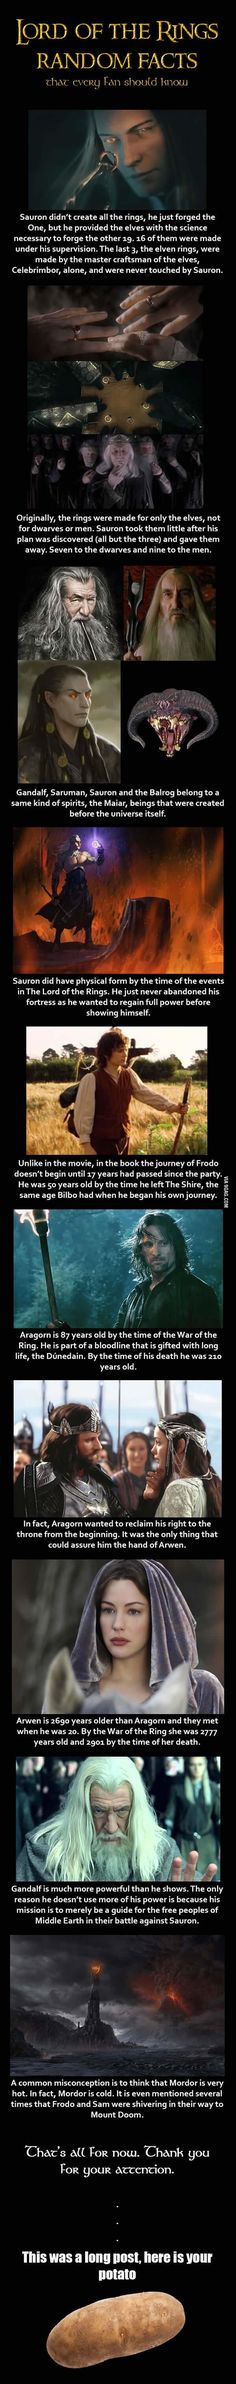 Here are some Lord of the Rings facts